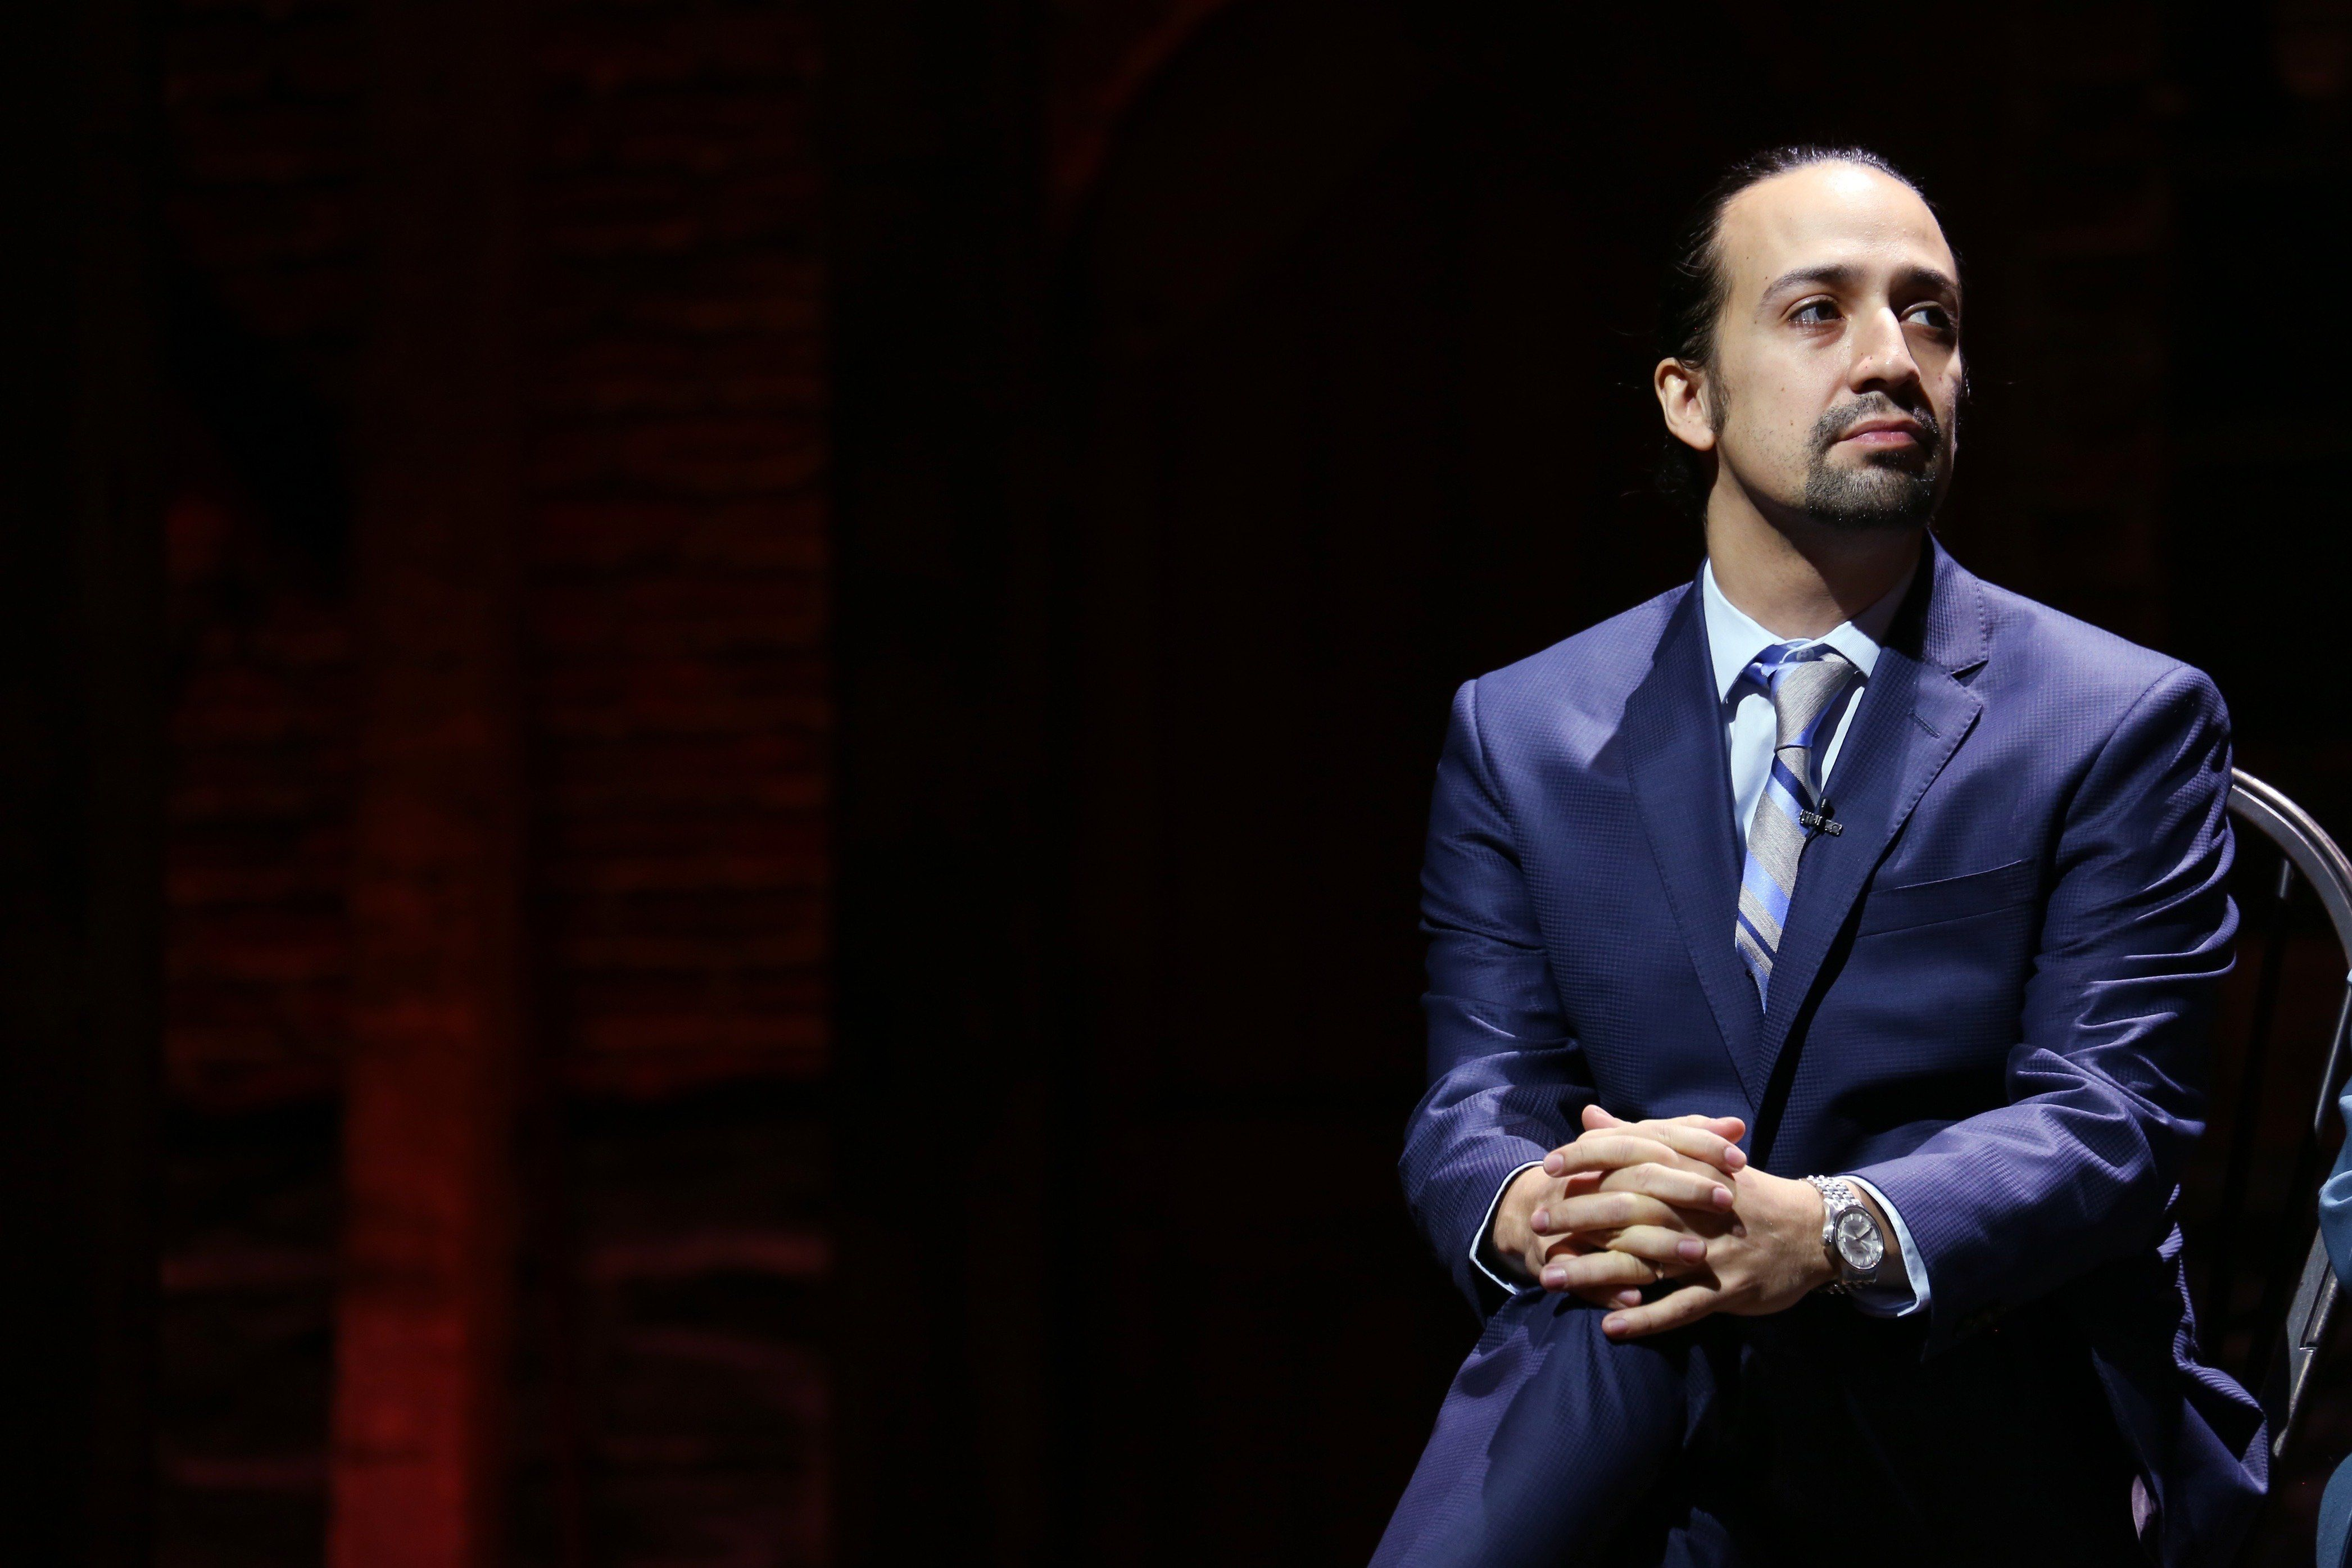 NEW YORK, NY - OCTOBER 27:  'Hamilton' creator Lin-Manuel Miranda  attends the press conference announcing 'Hamilton: The Musical' and the Rockefeller Foundation partnership to provide 20,000 NYC Public School students with tickets to 'Hamilton' on Broadway with $1.46 Million Grant at Richard Rodgers Theatre on October 27, 2015 in New York City.  (Photo by Walter McBride/WireImage)